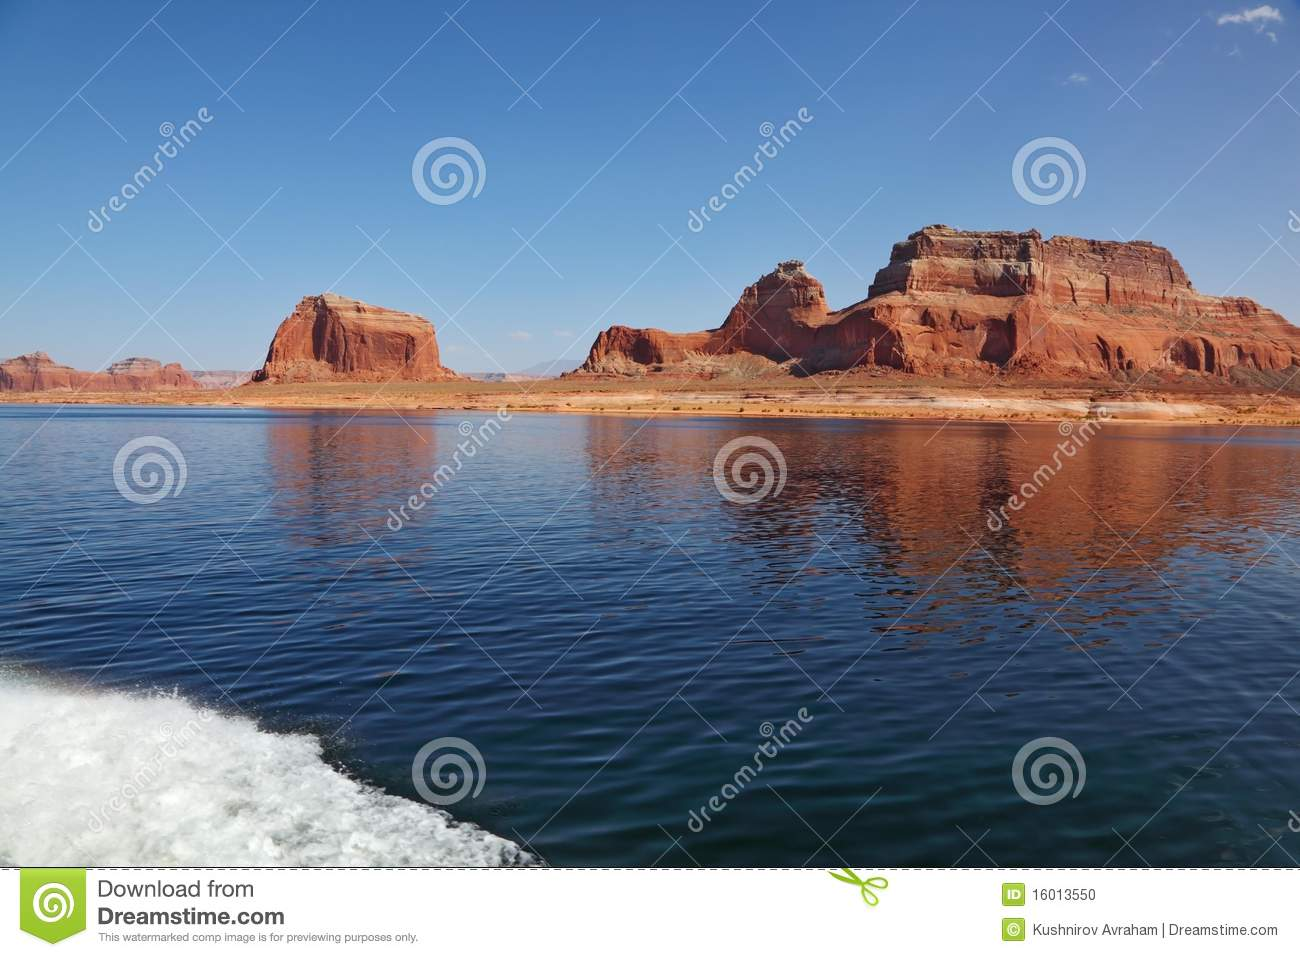 Picturesque Red Cliffs Reflected In The Smooth Water Of The Lake